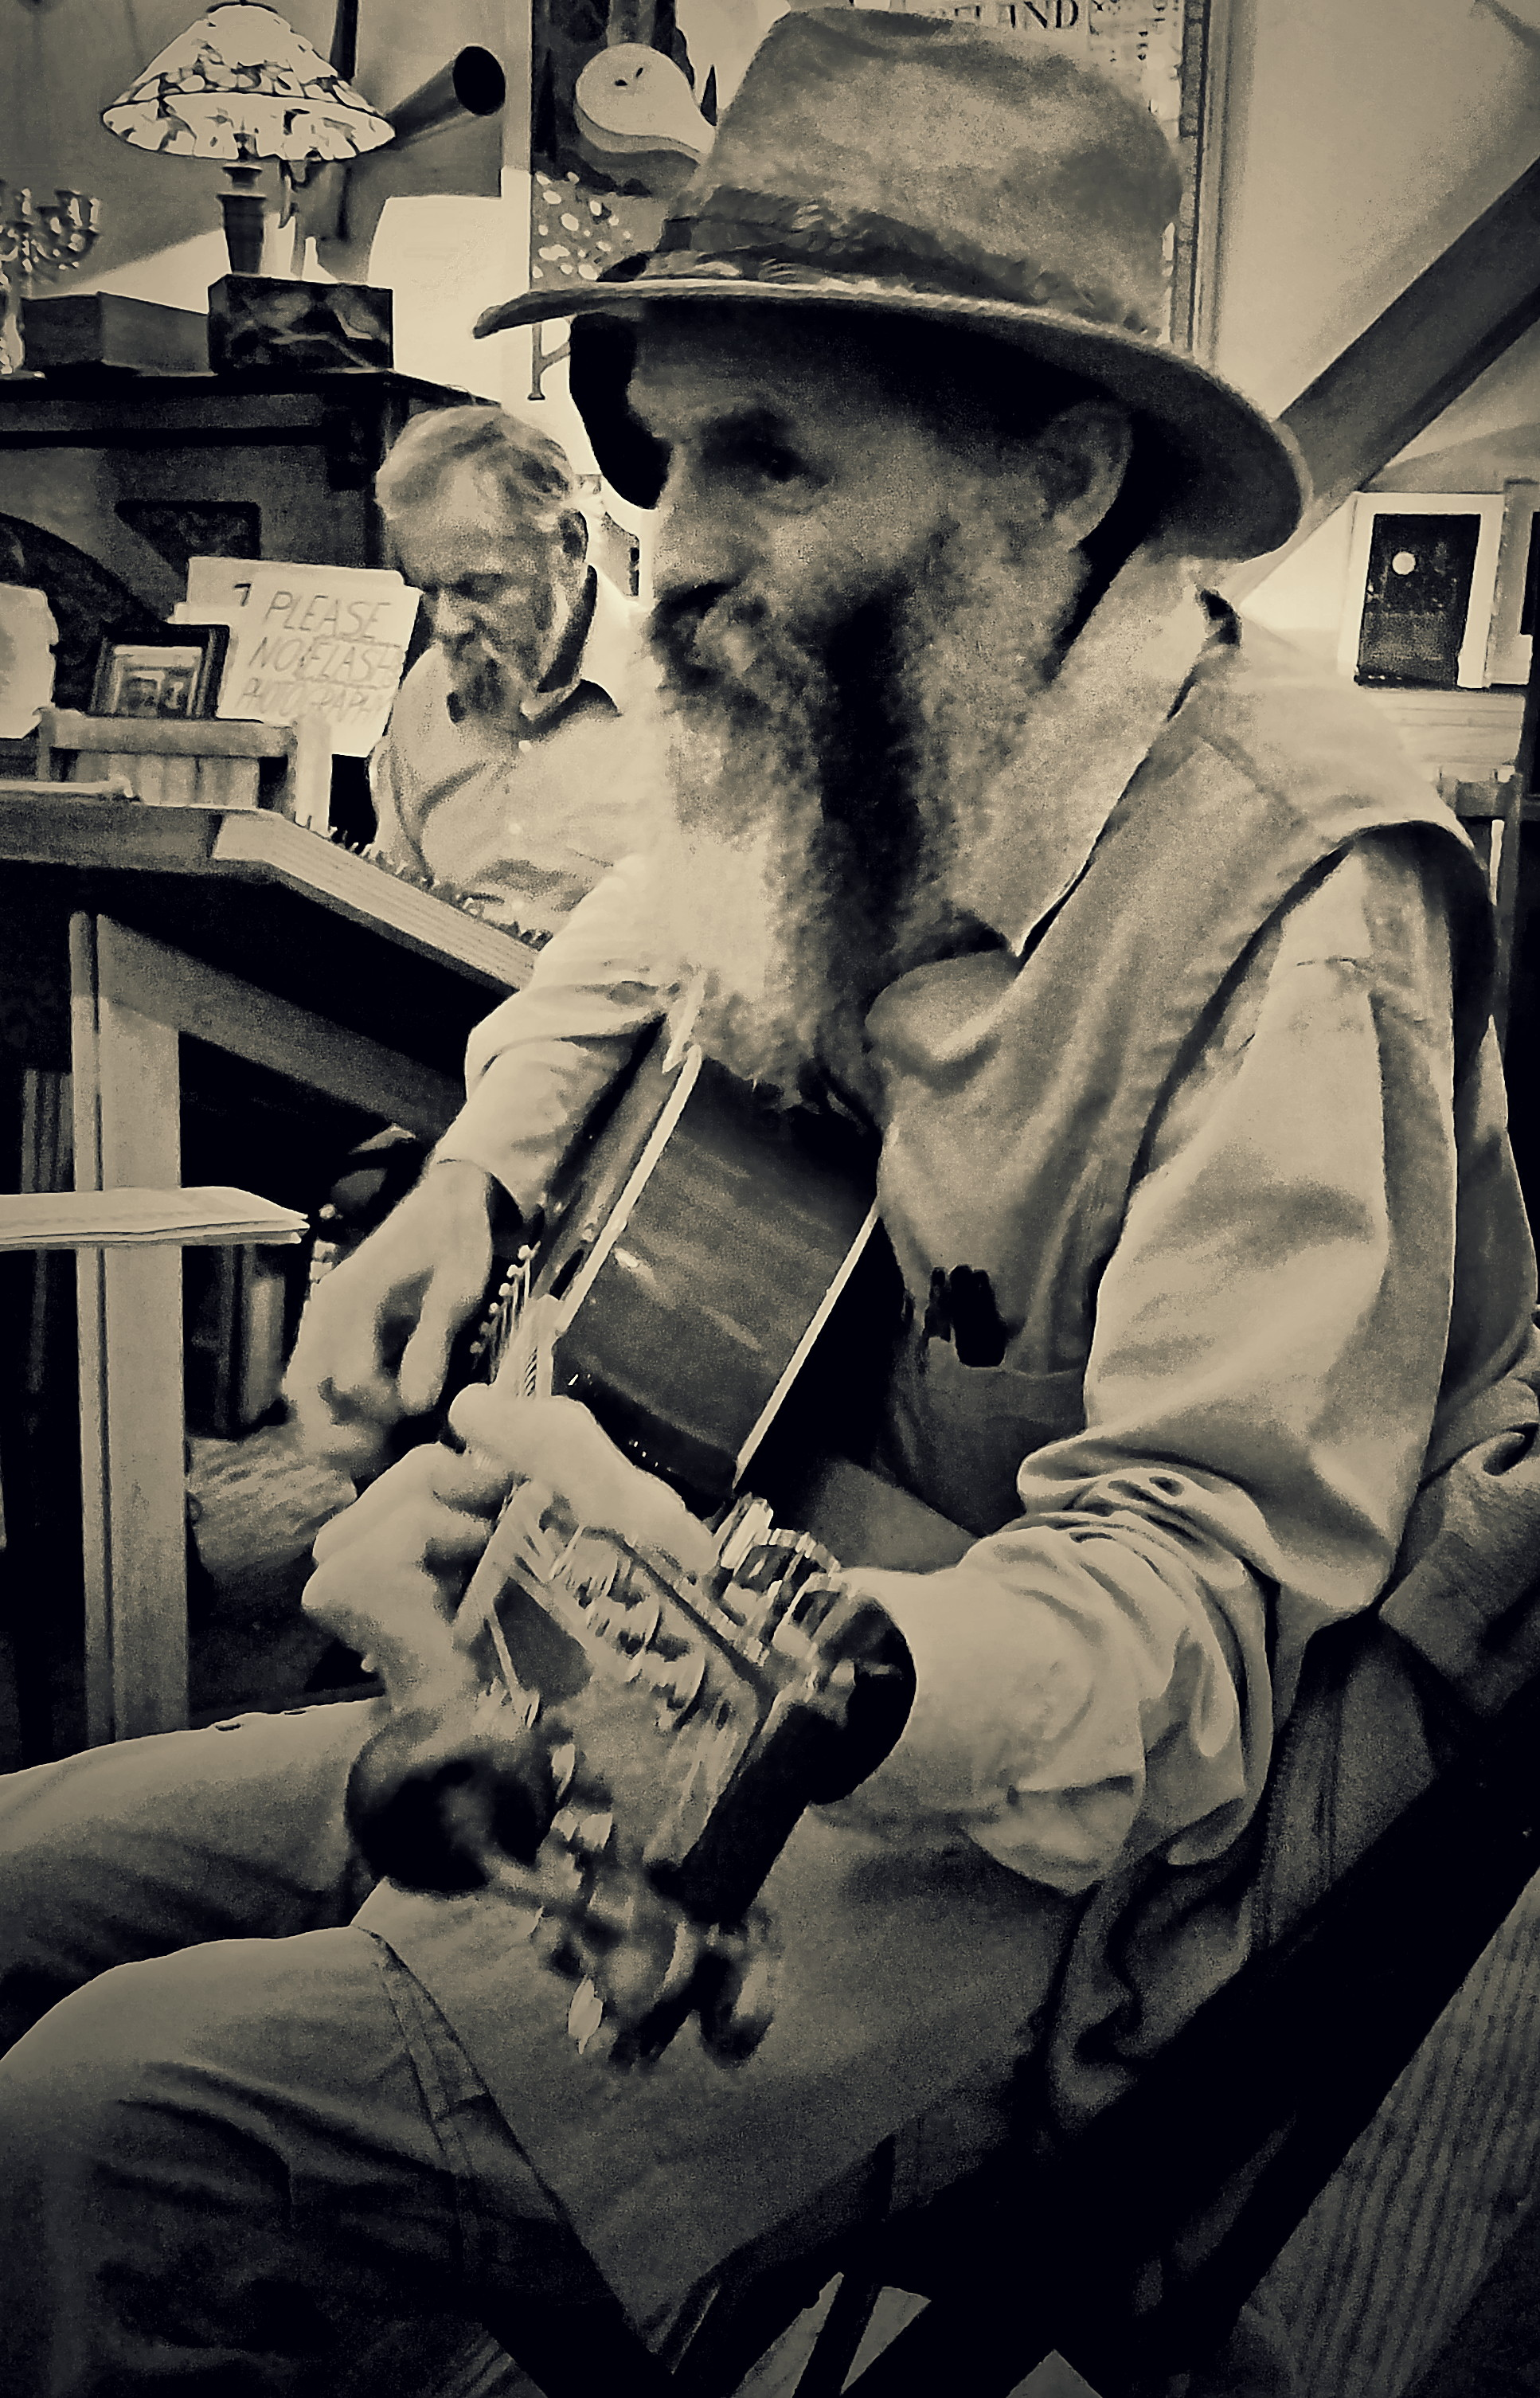 O'Hurley's General Store, Thursday night jam, West Virginia – complete with dulcimer